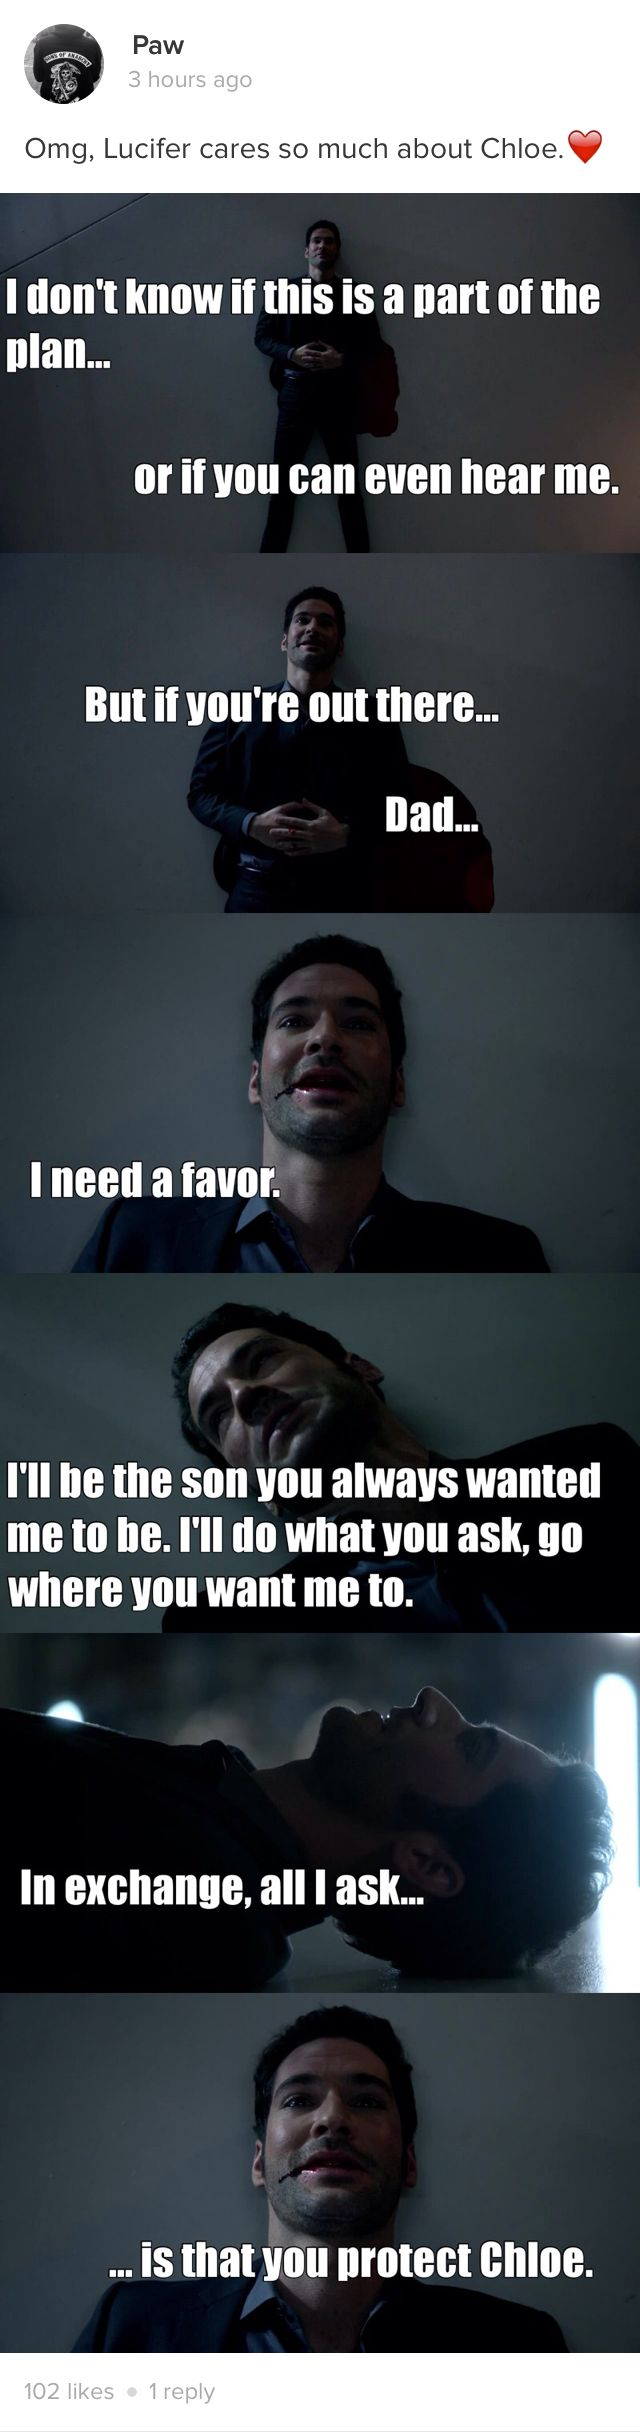 OMG!! That is so Sweet and So Loving!! Lucifer cares SO Deeply and SO Much for Chloe!! ❤️